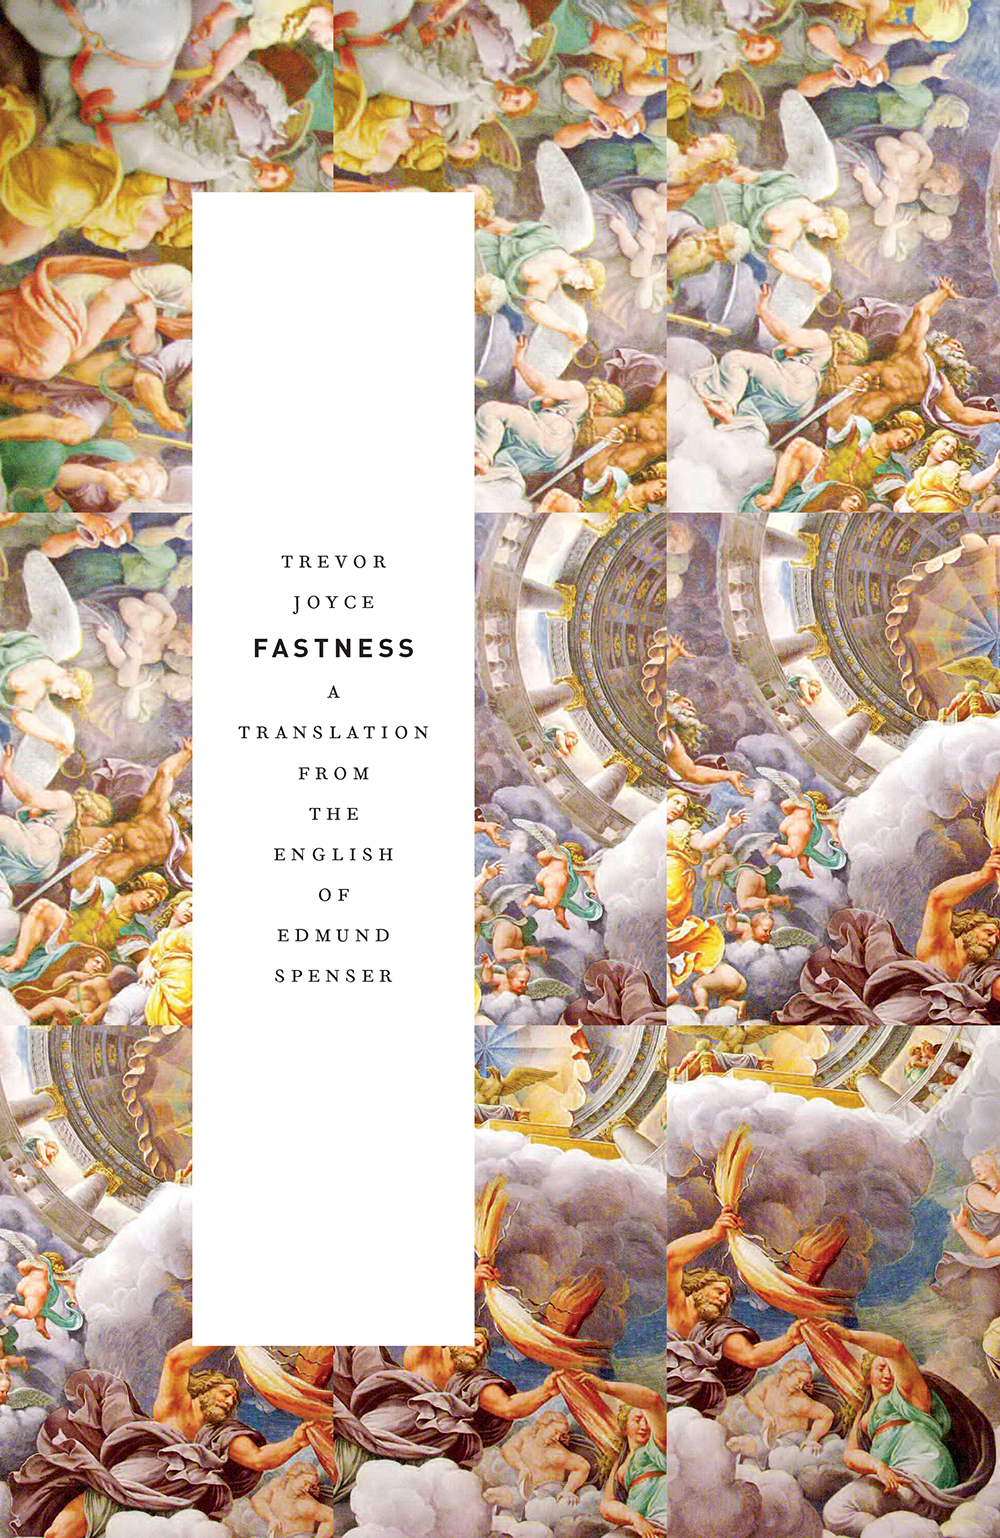 Fastness: A Translation from the English of Edmund Spenser